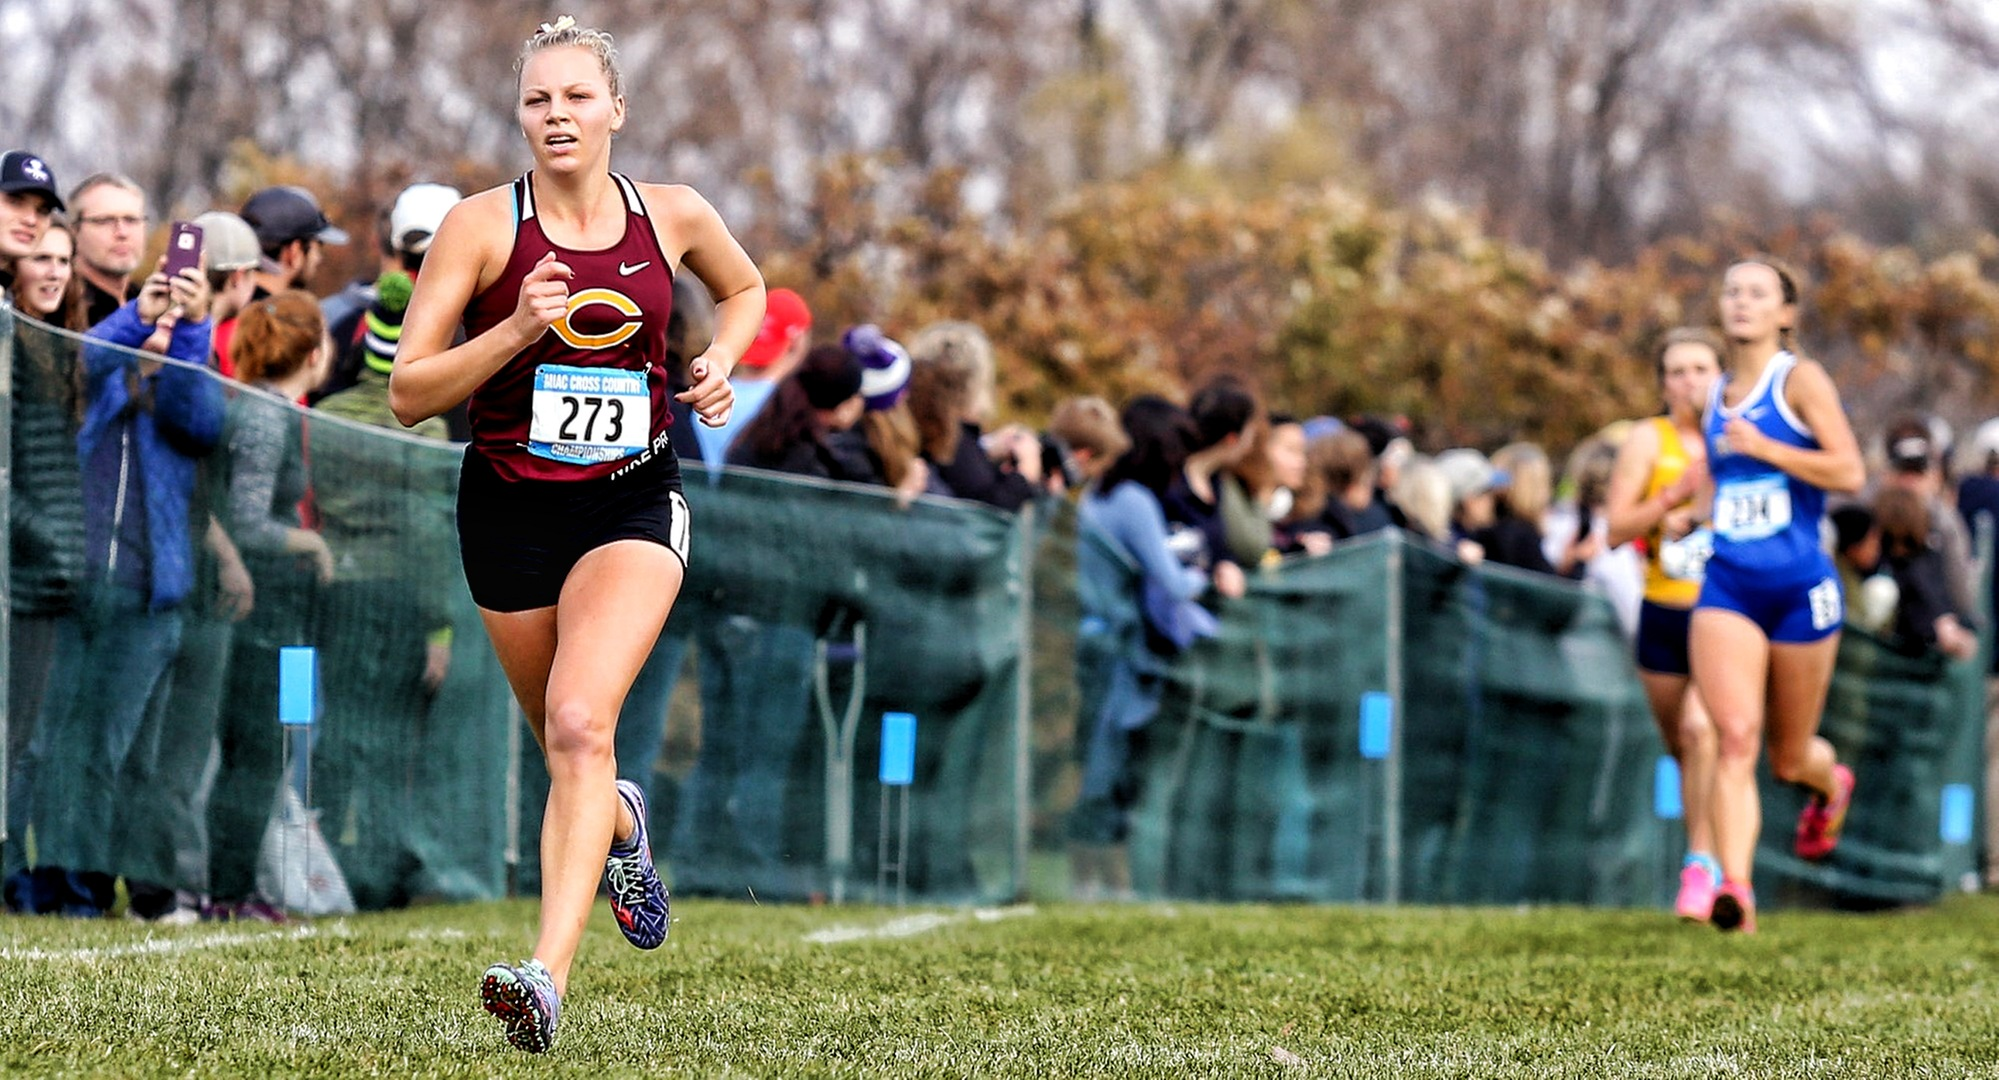 Kara Andersen nears the finish line at the MIAC Championship Meet (Picture courtesy of Nathan Lodermeier)